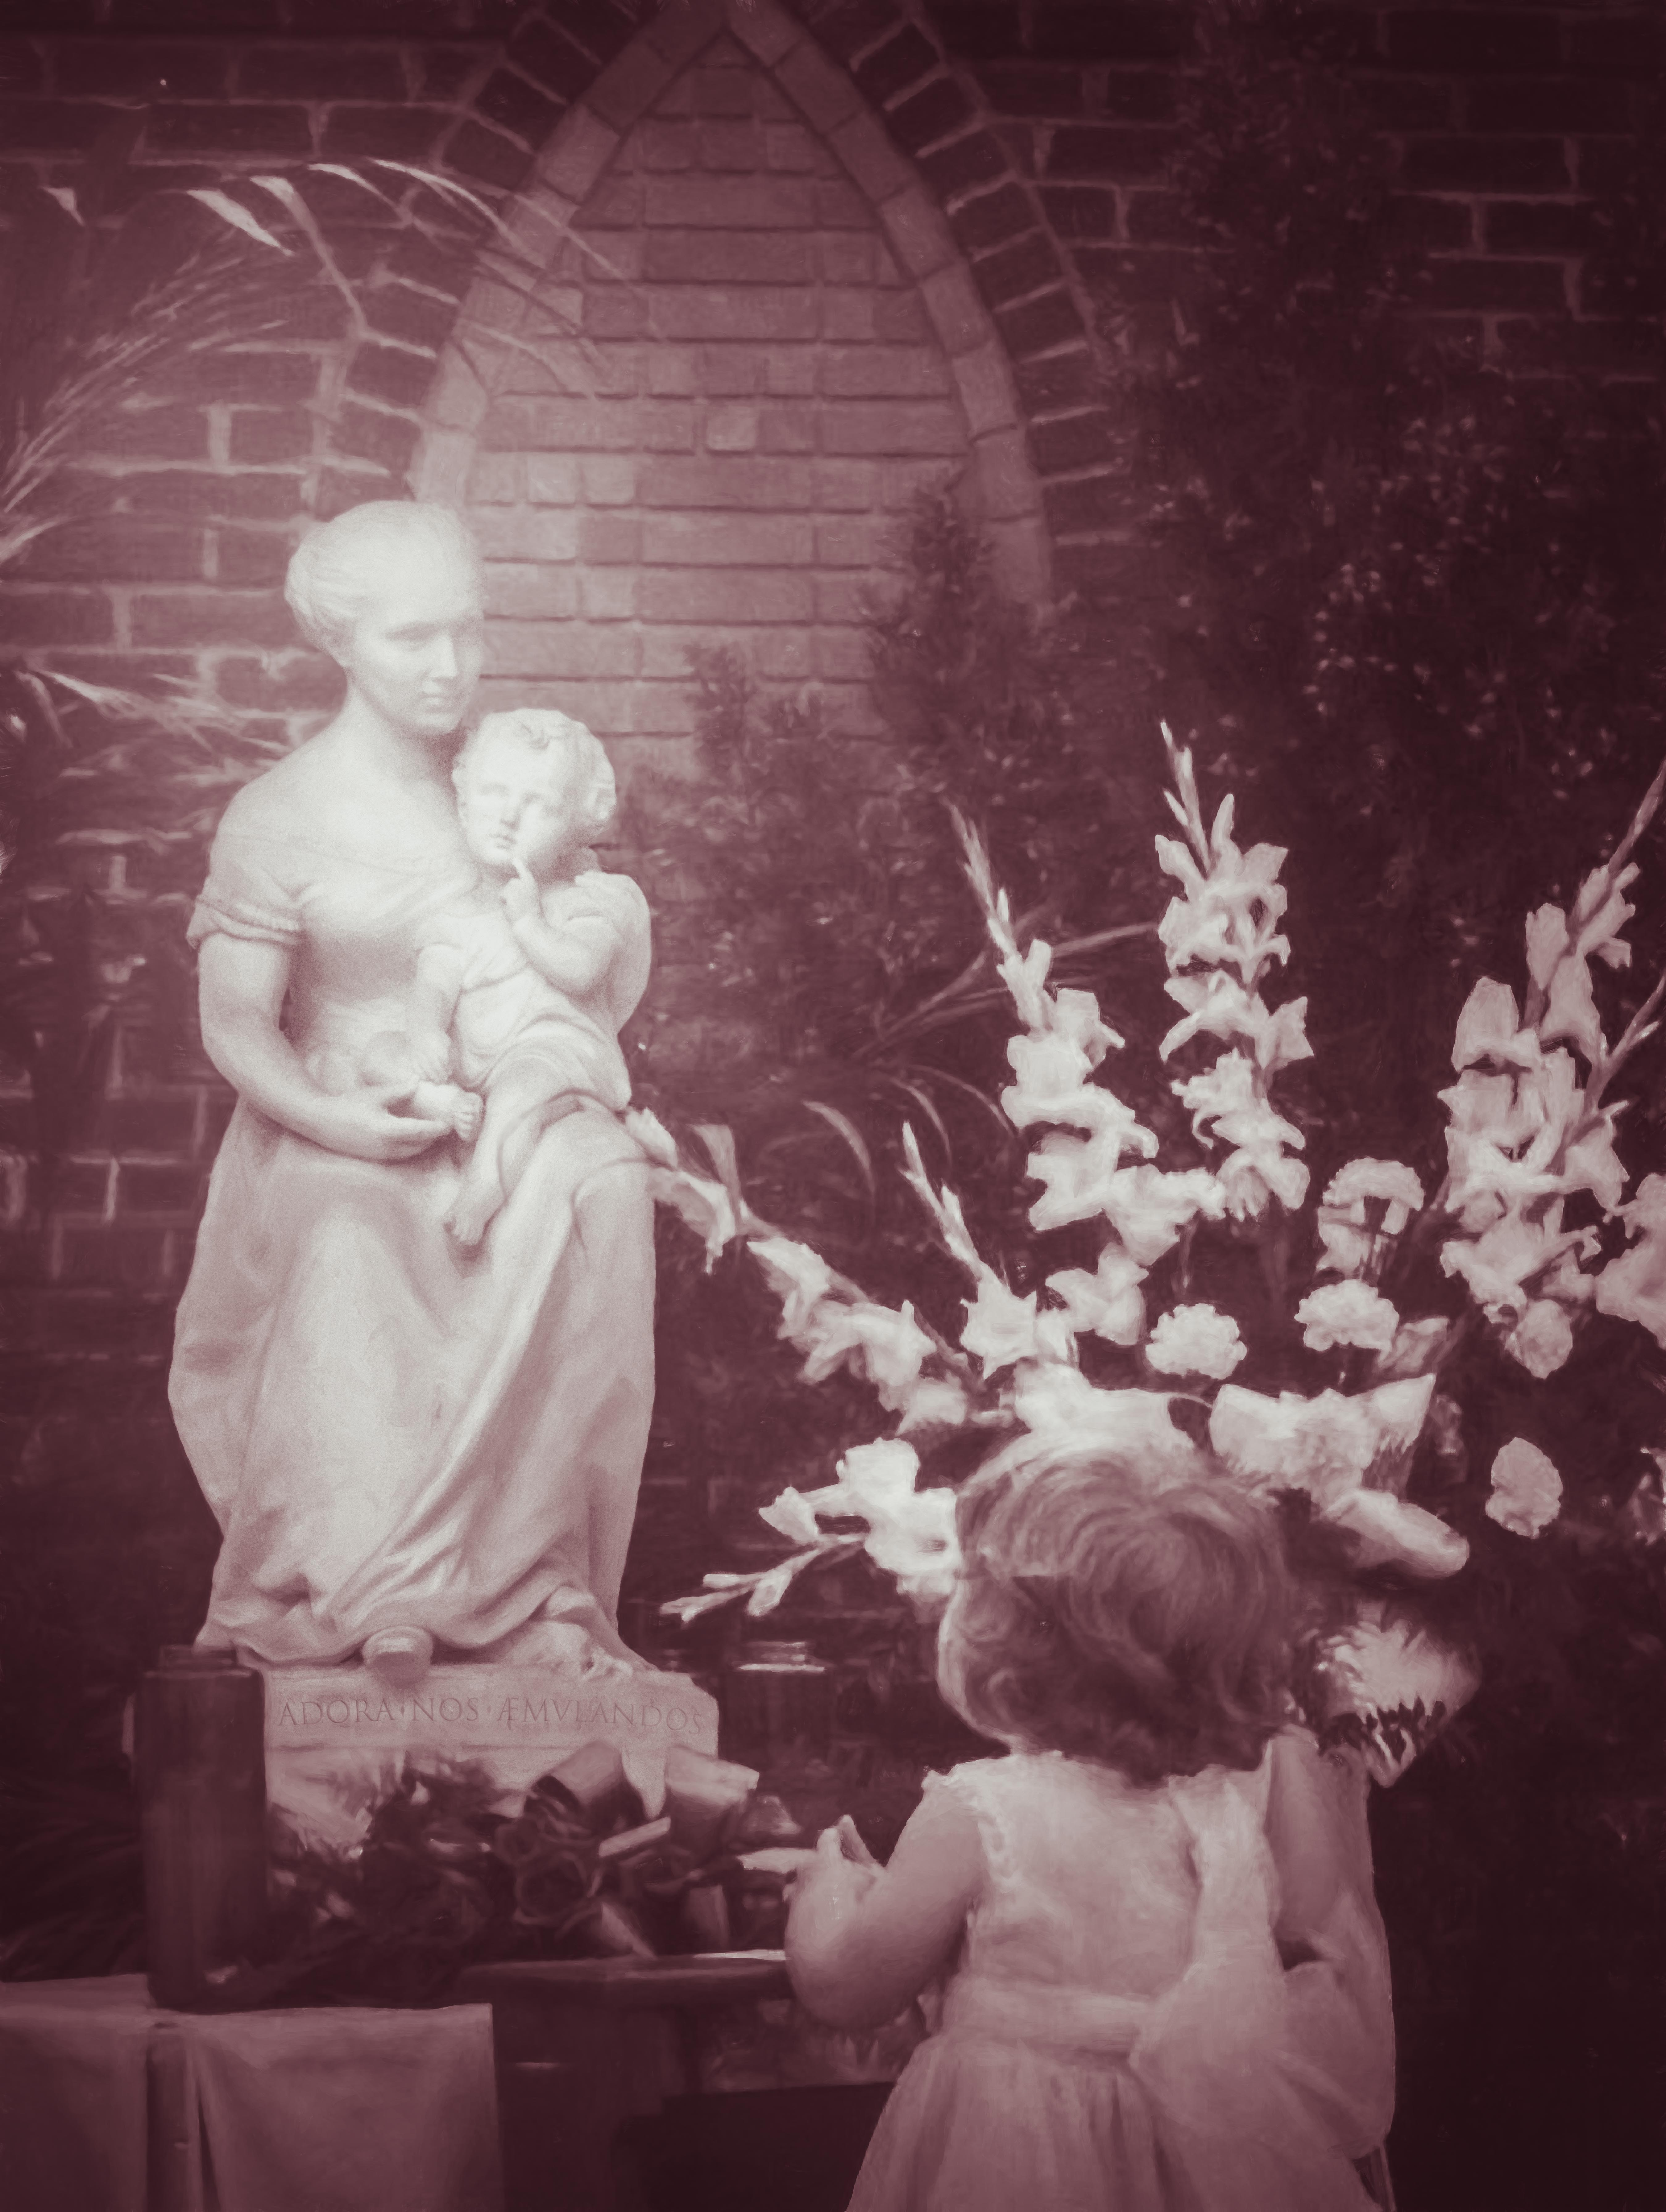 Cult of the White Madonna - Rose Anderson